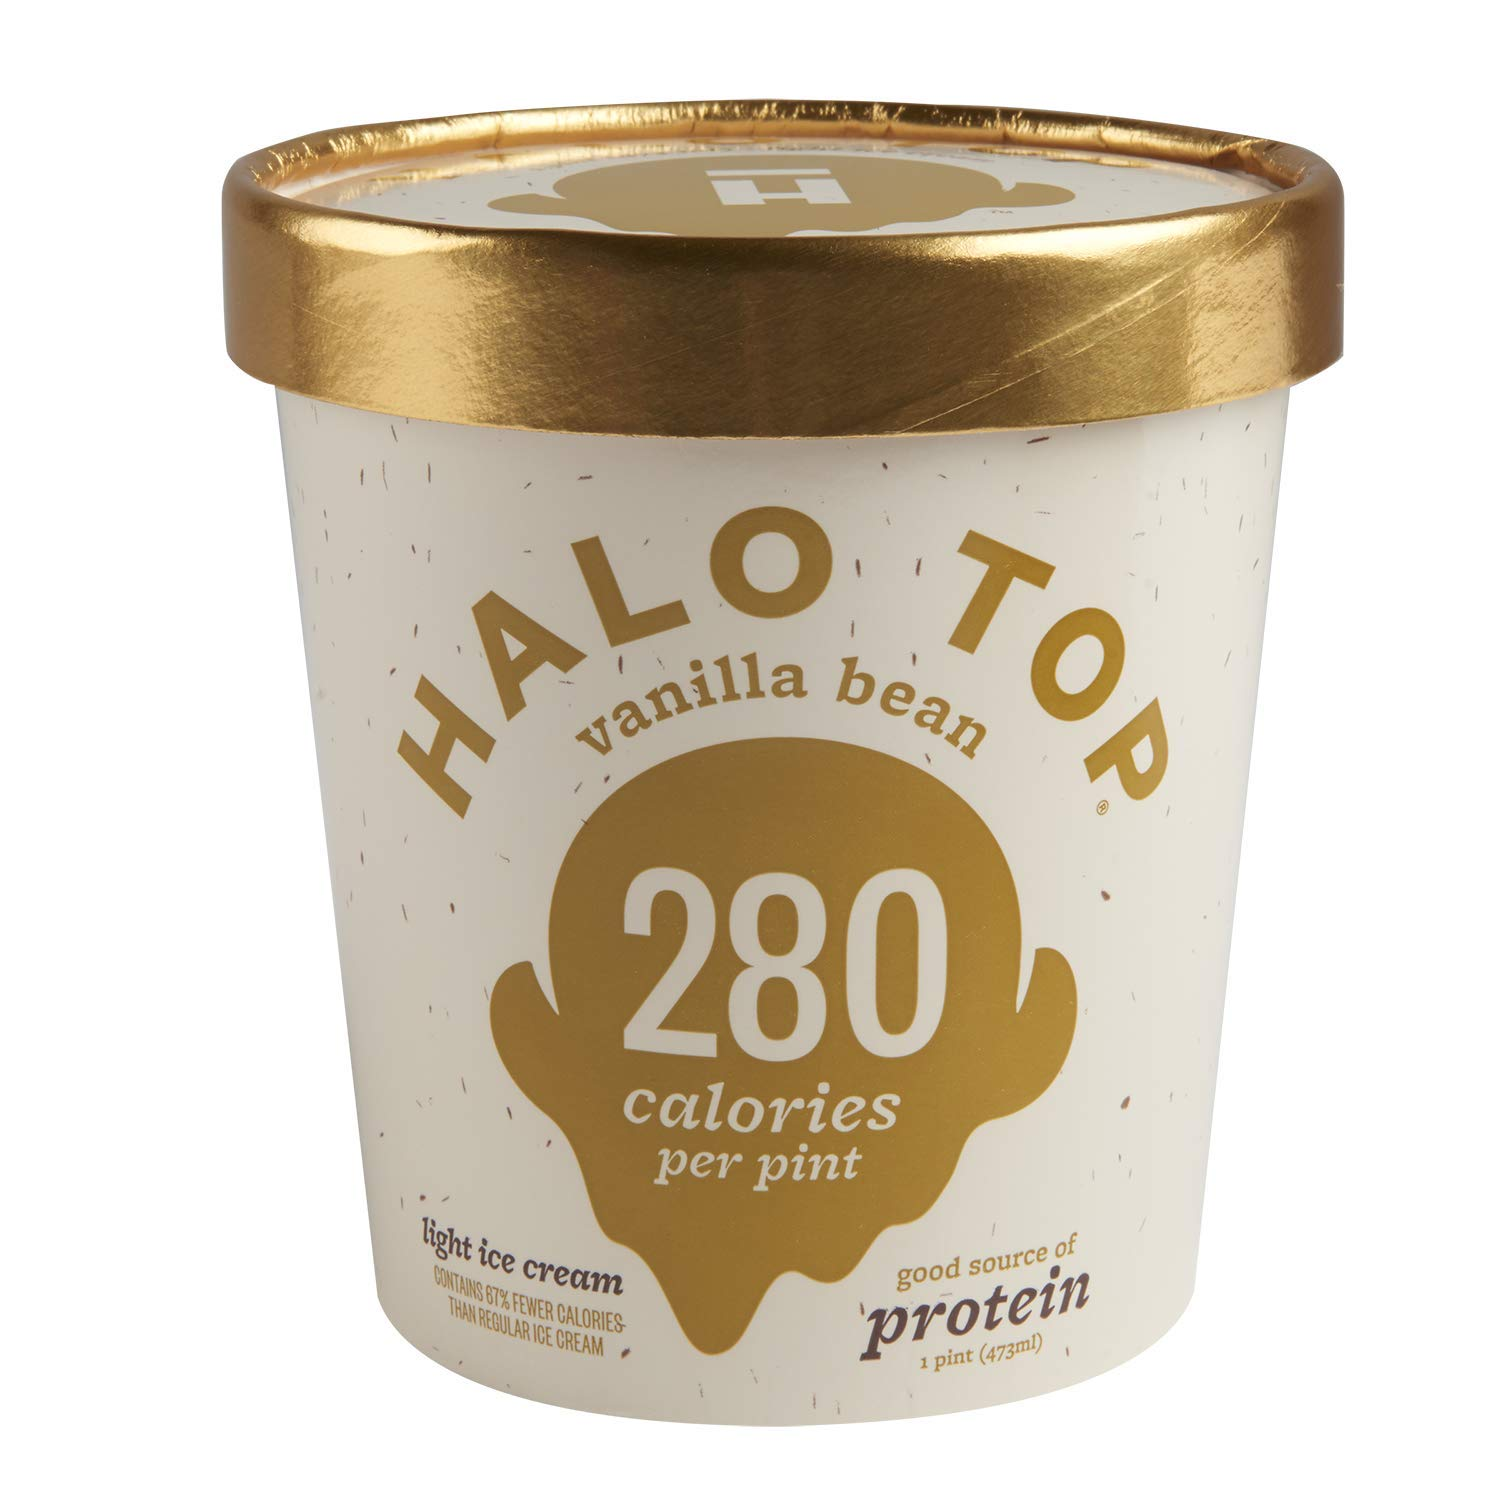 Halo Top Light Ice Cream, Vanilla Bean, 16 oz (Frozen)